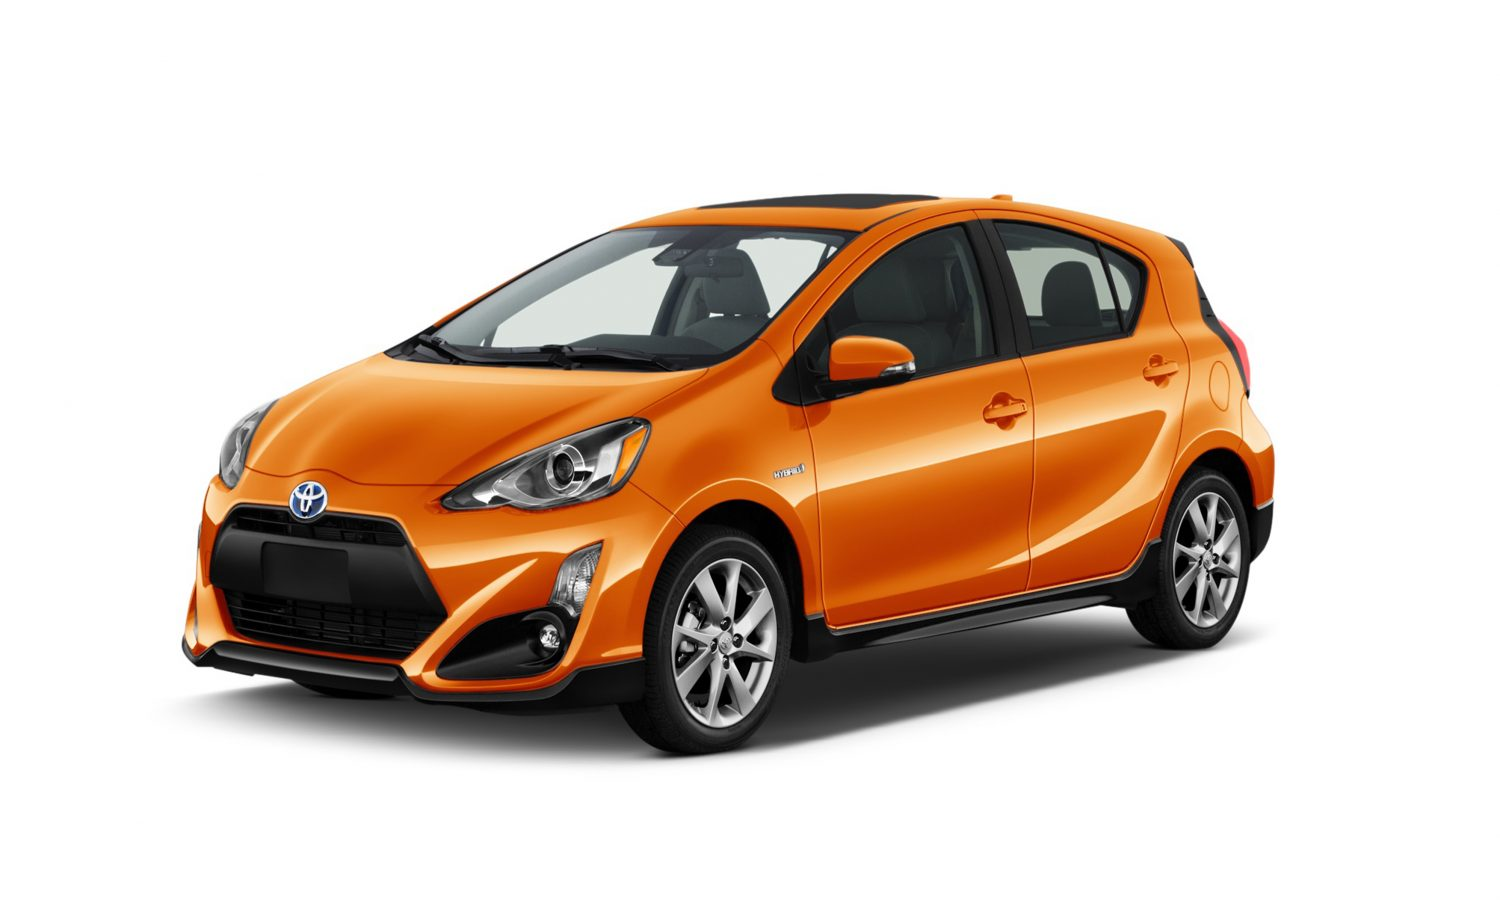 2017 Toyota Prius c: Sportier Styling with Added Safety Technology